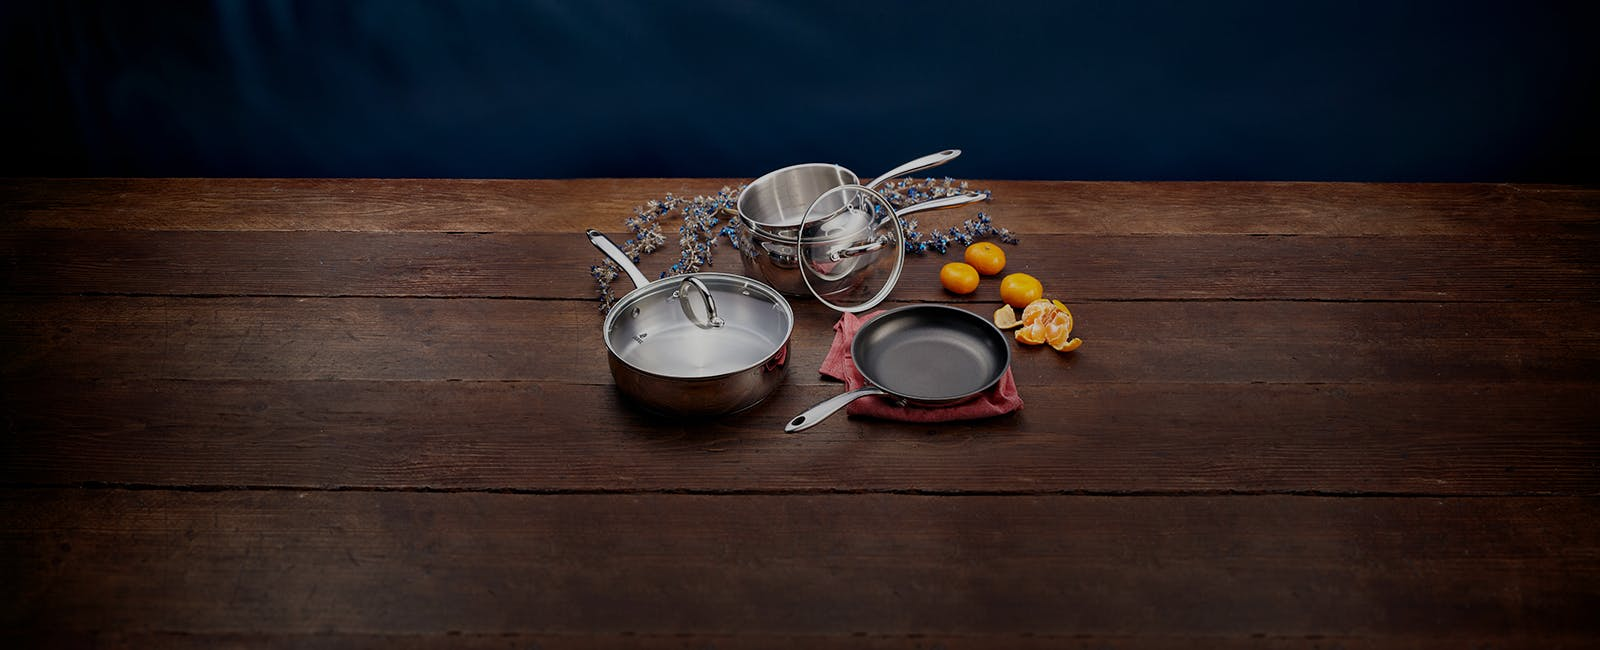 Judge Classic stainless steel cookware